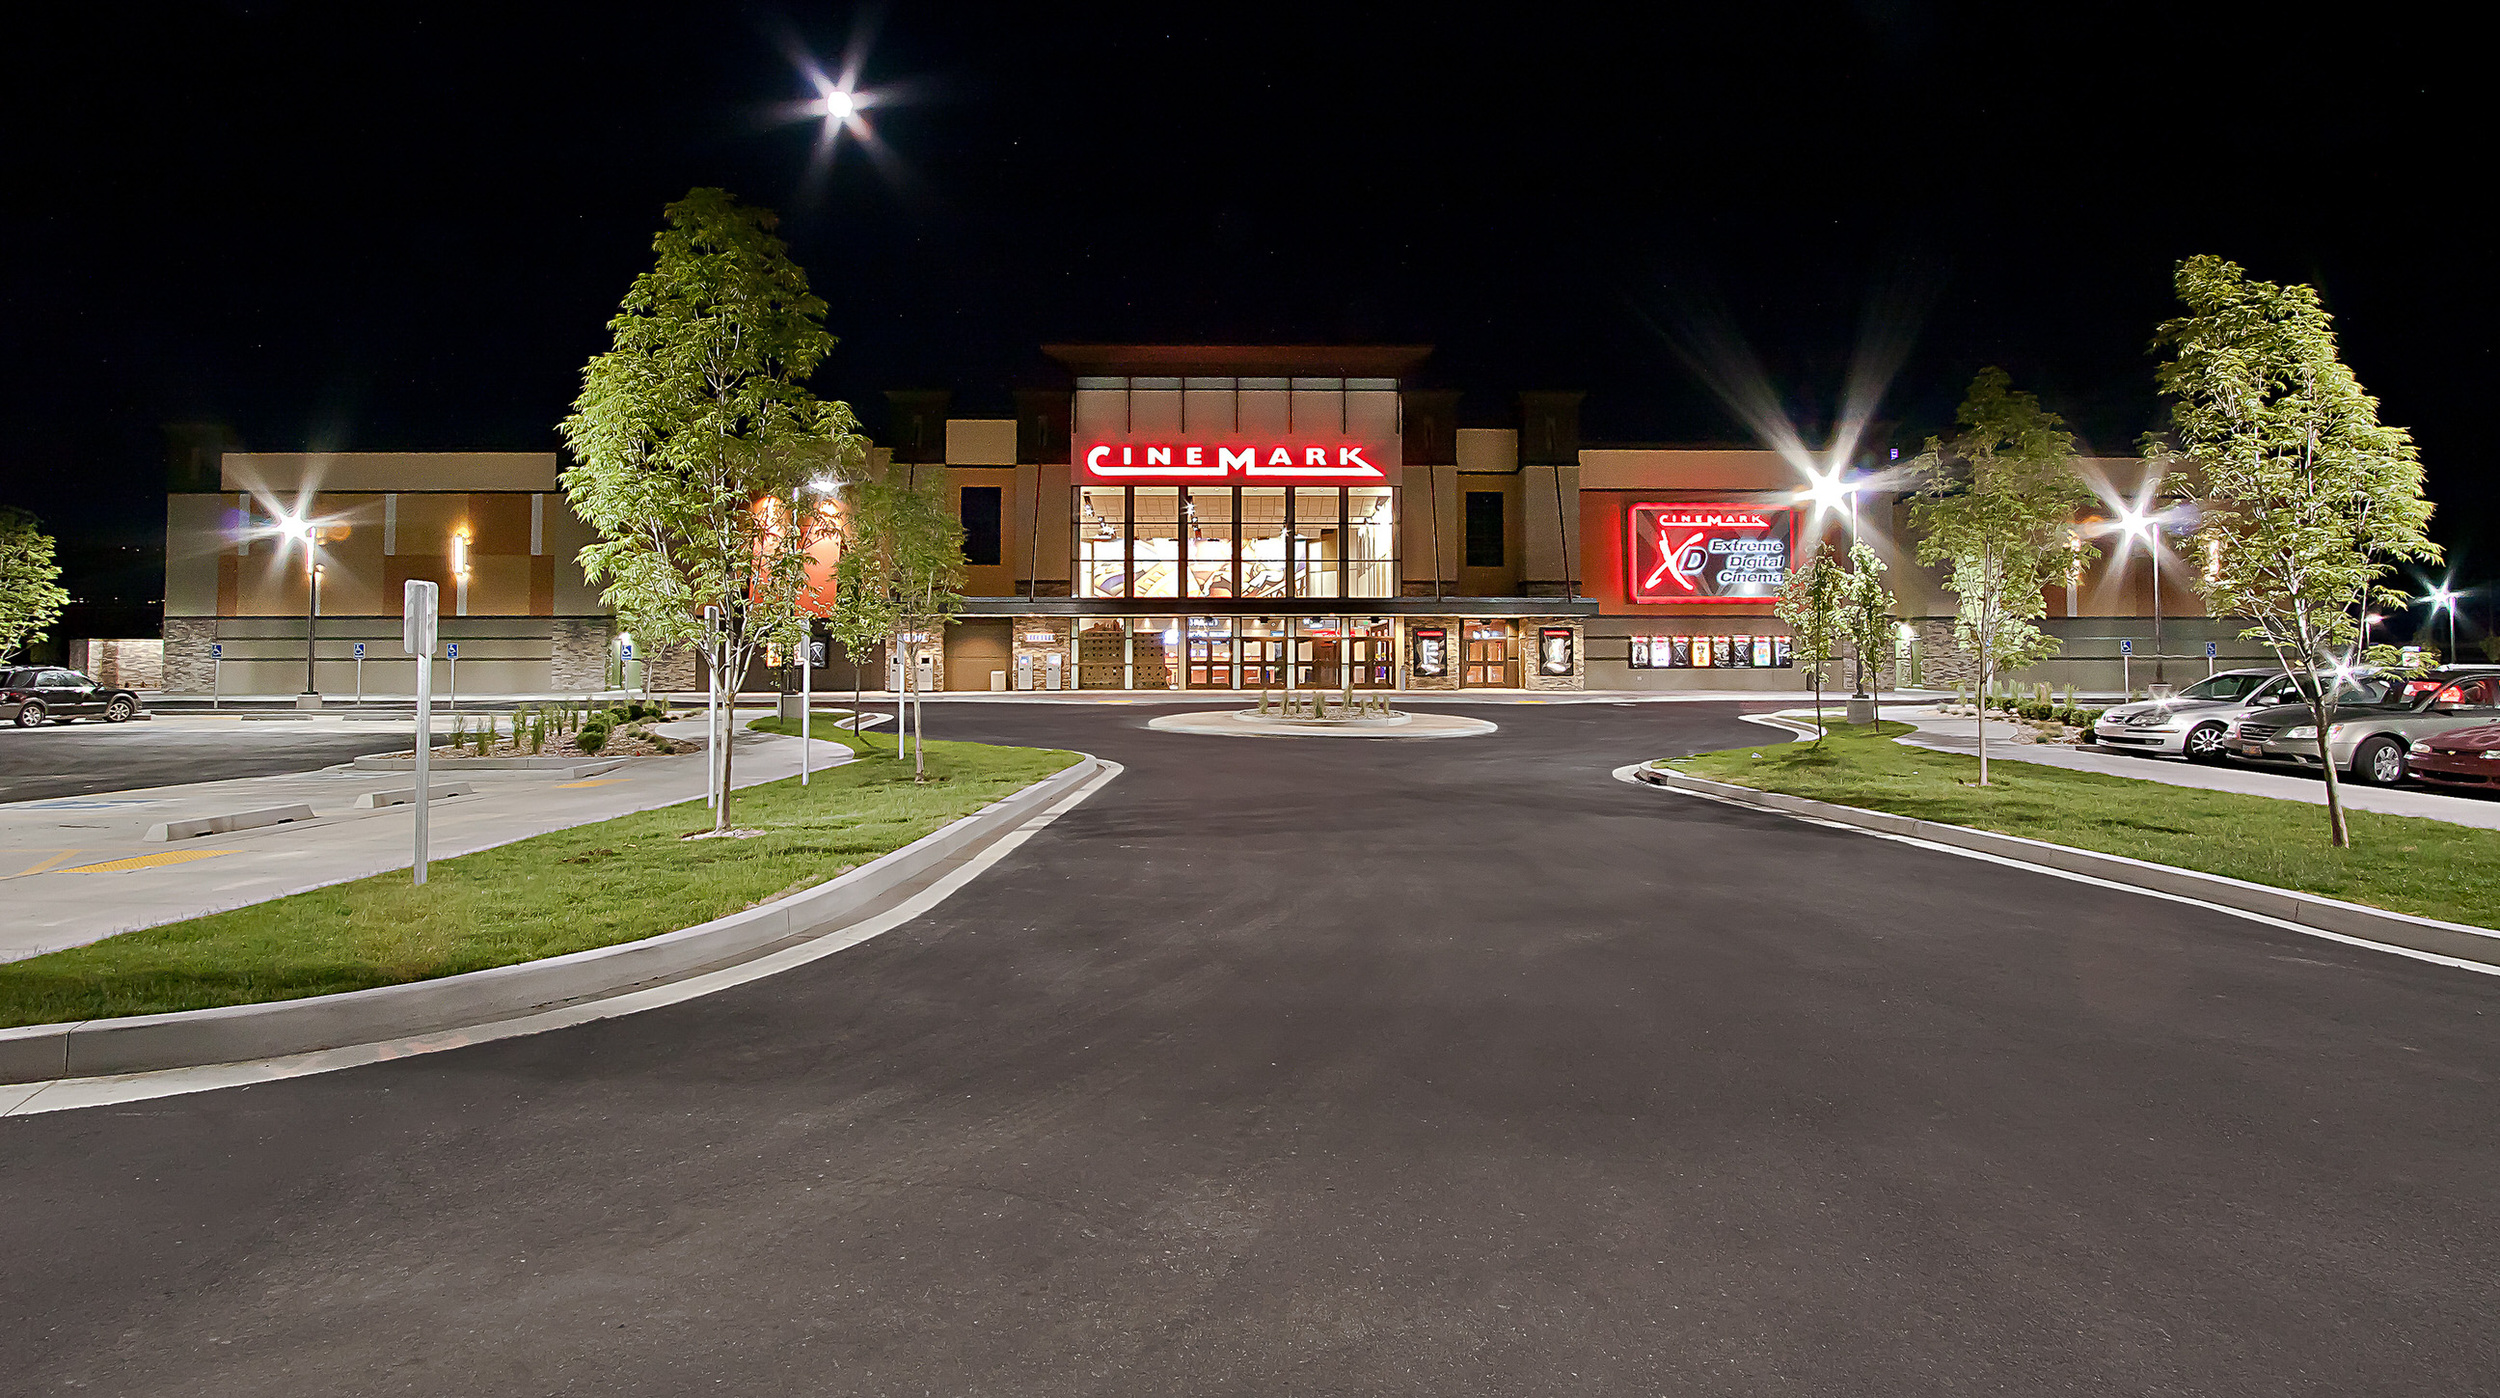 Cinemark XD 12 Theater – Draper, UT